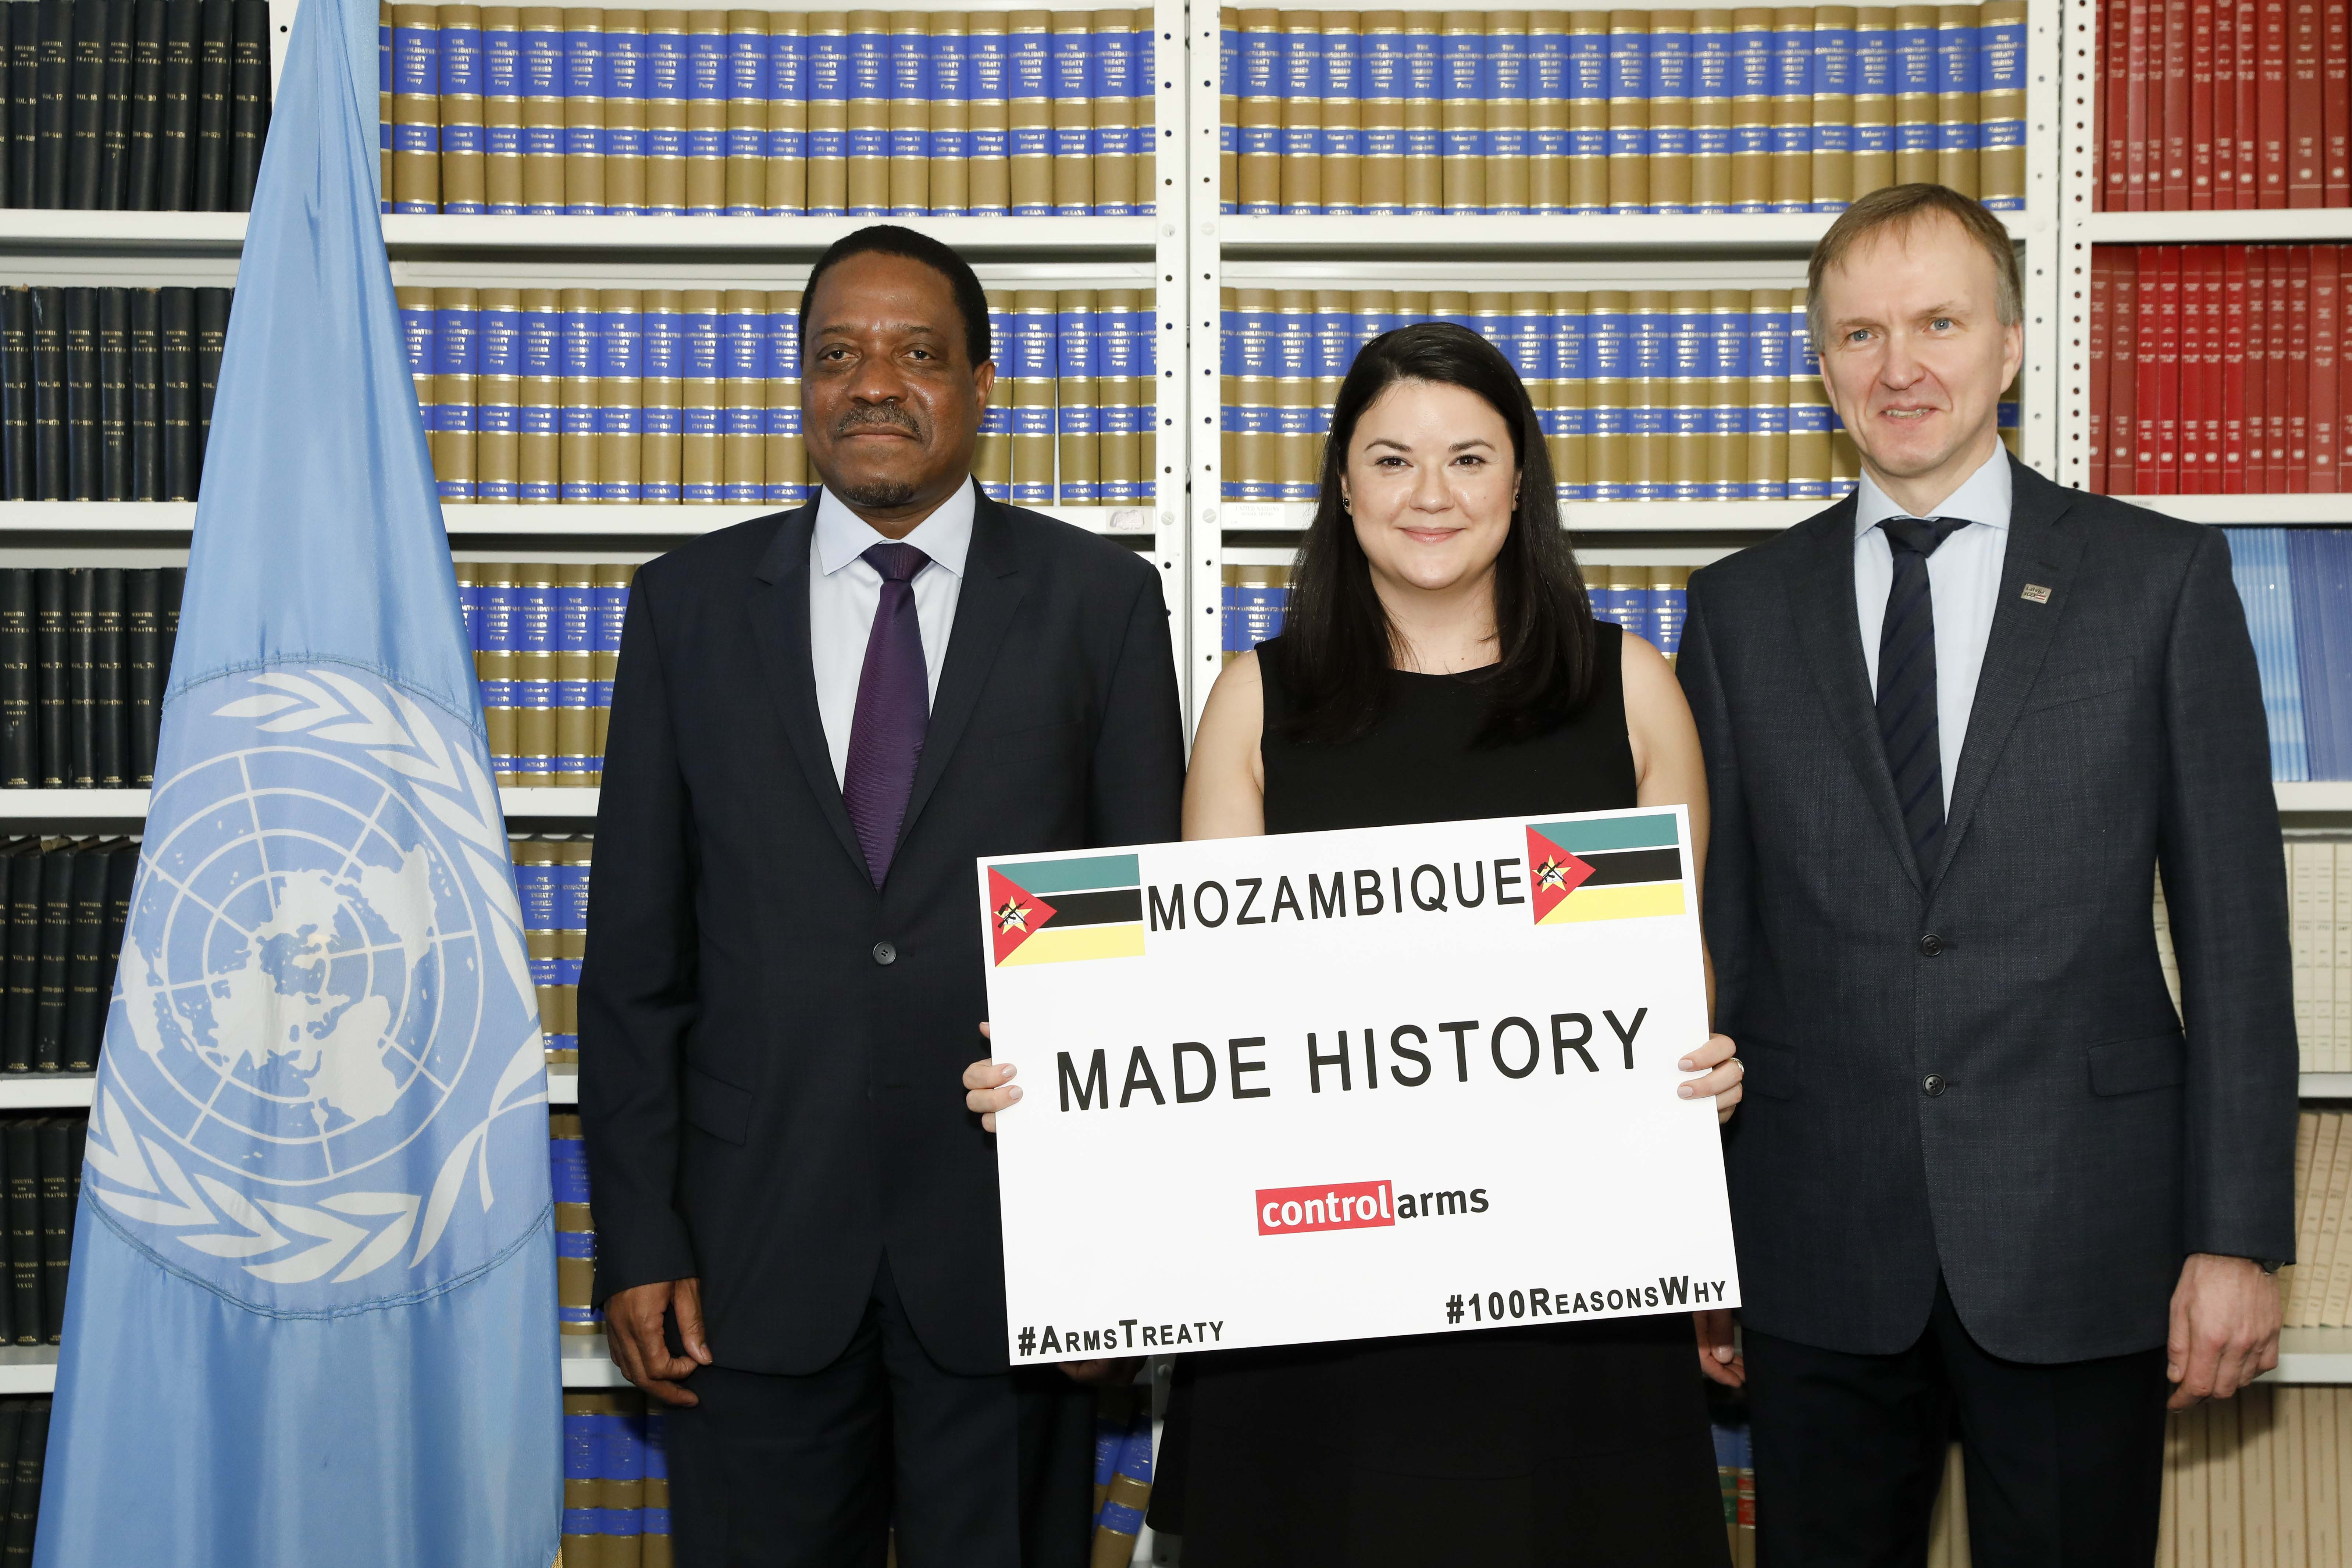 Mozambique joins the Arms Trade Treaty as 100th state party on Friday, Dec. 14, 2018, in New York City